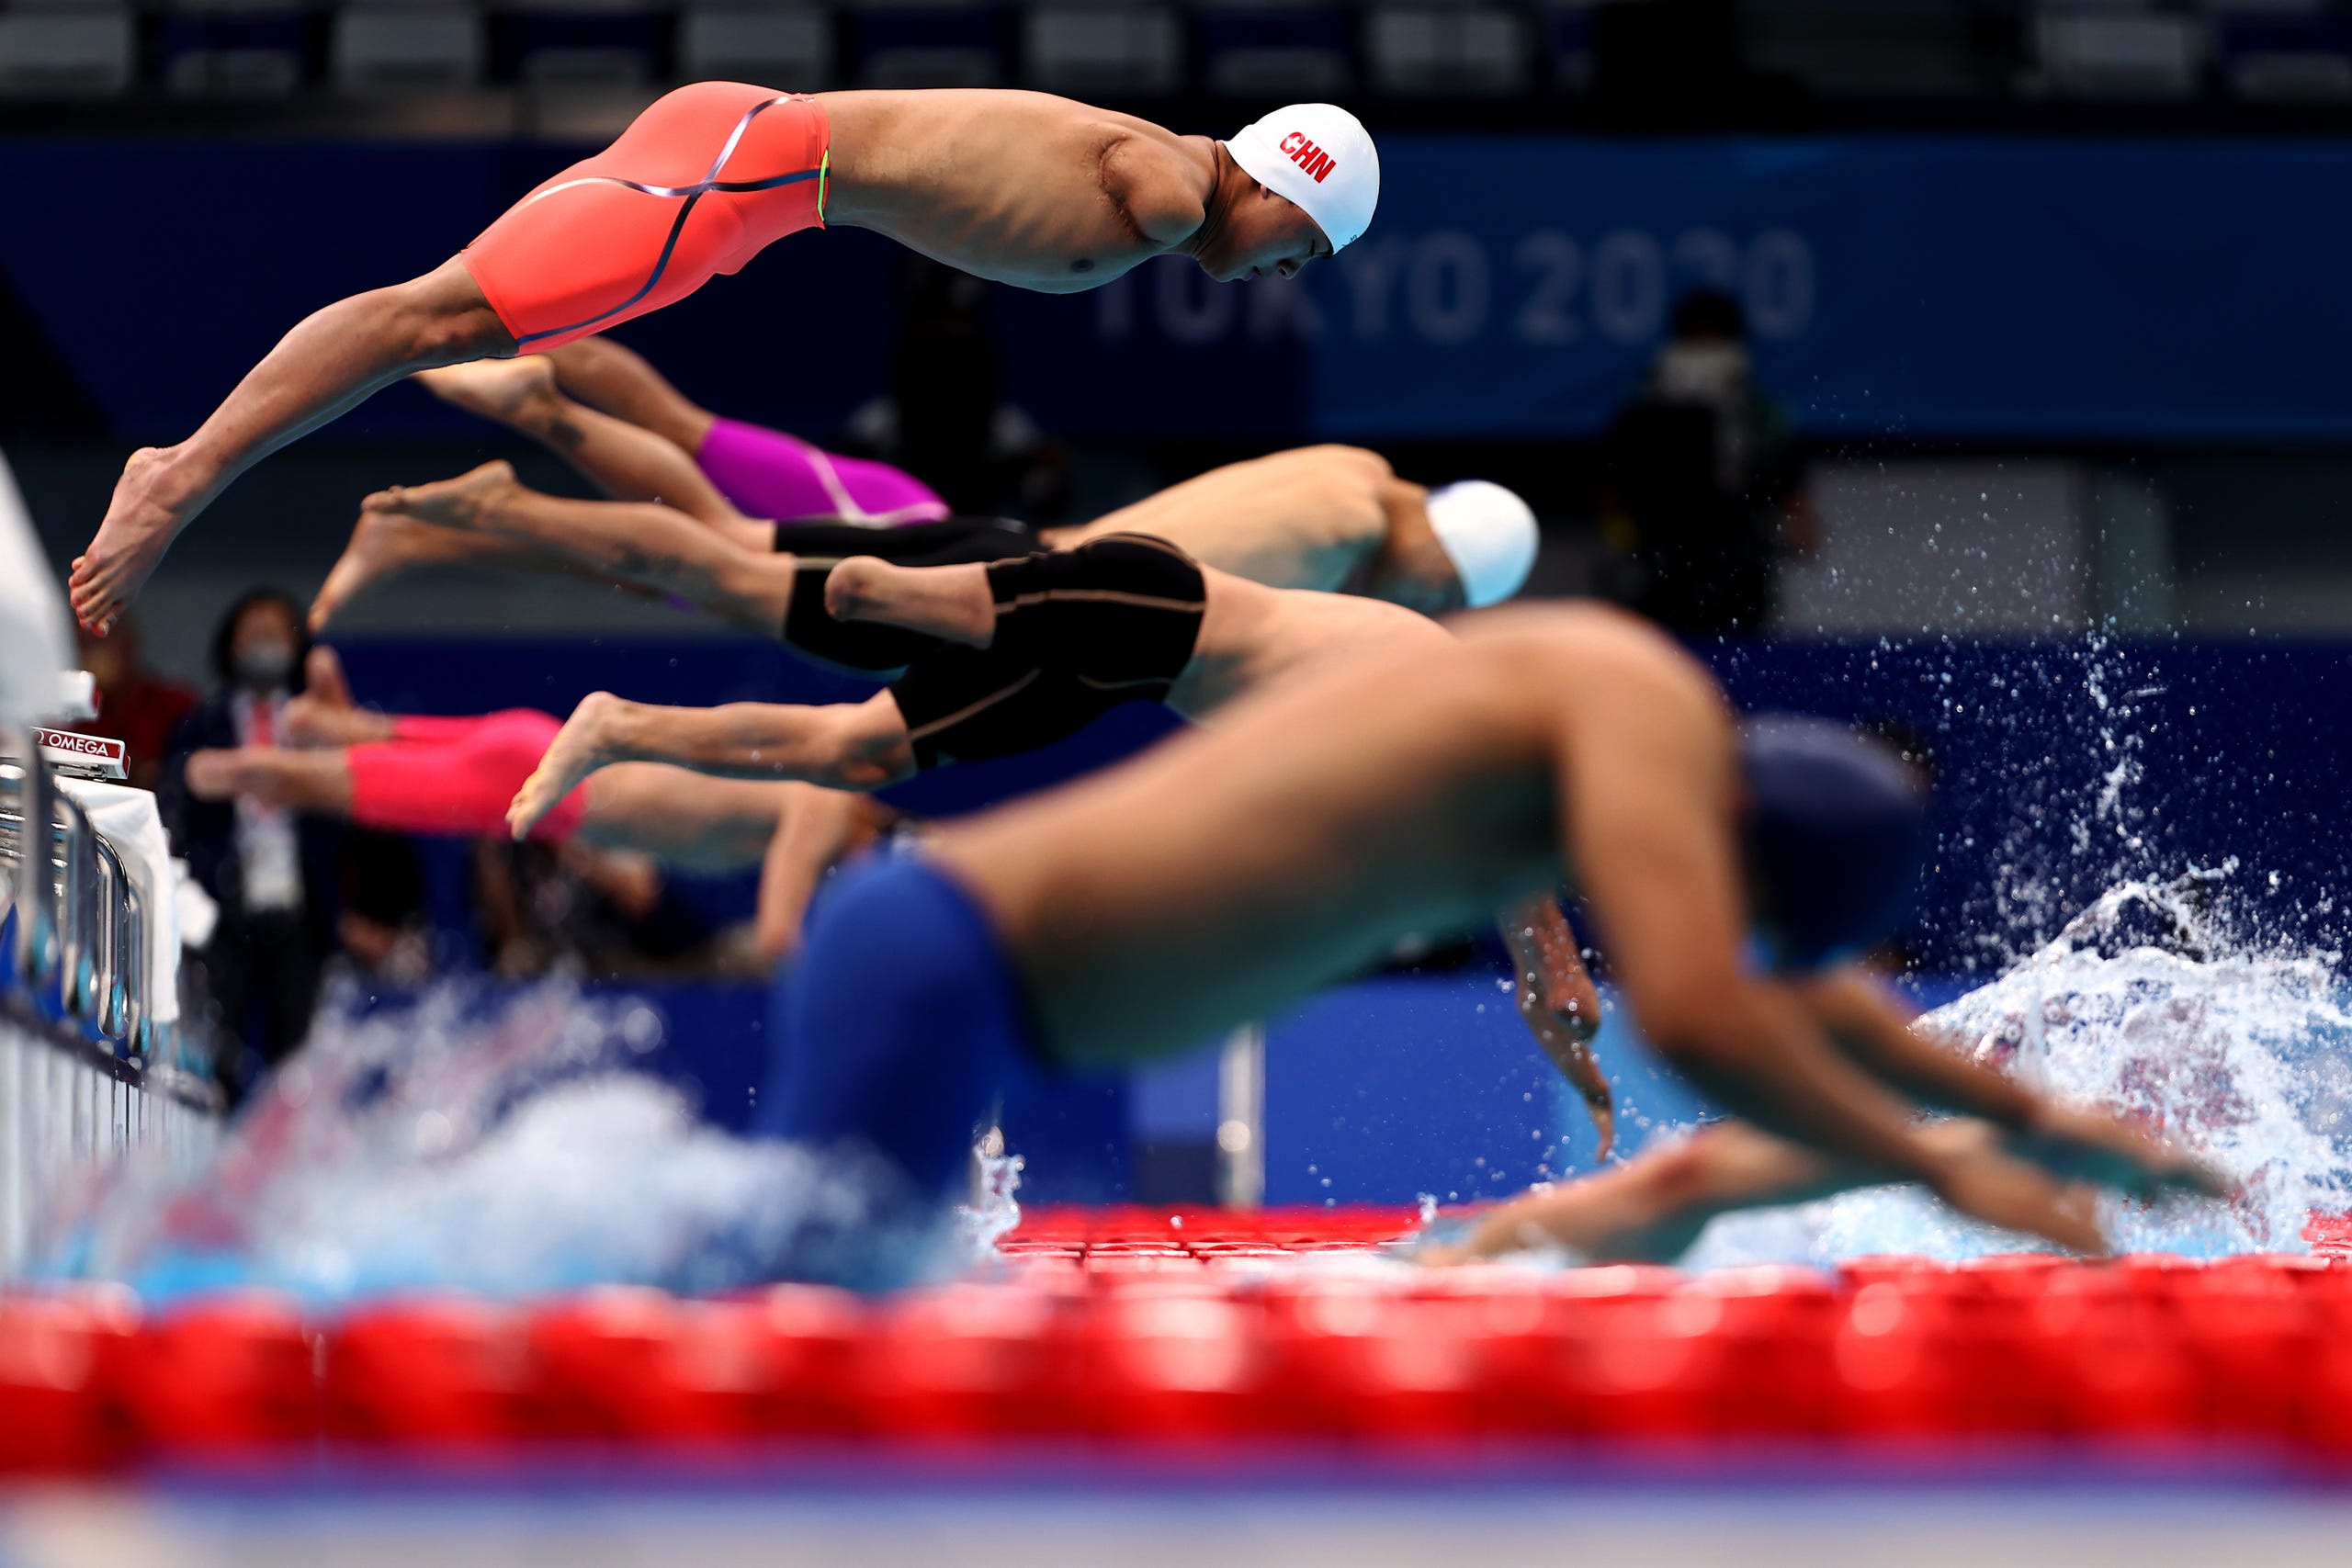 August 26, 2021: Yuan Weiyi of Team China competes in the Men's 100m Freestyle - S5 final on day 2 of the Tokyo 2020 Paralympic Games at the Tokyo Aquatics Centre in Tokyo, Japan.